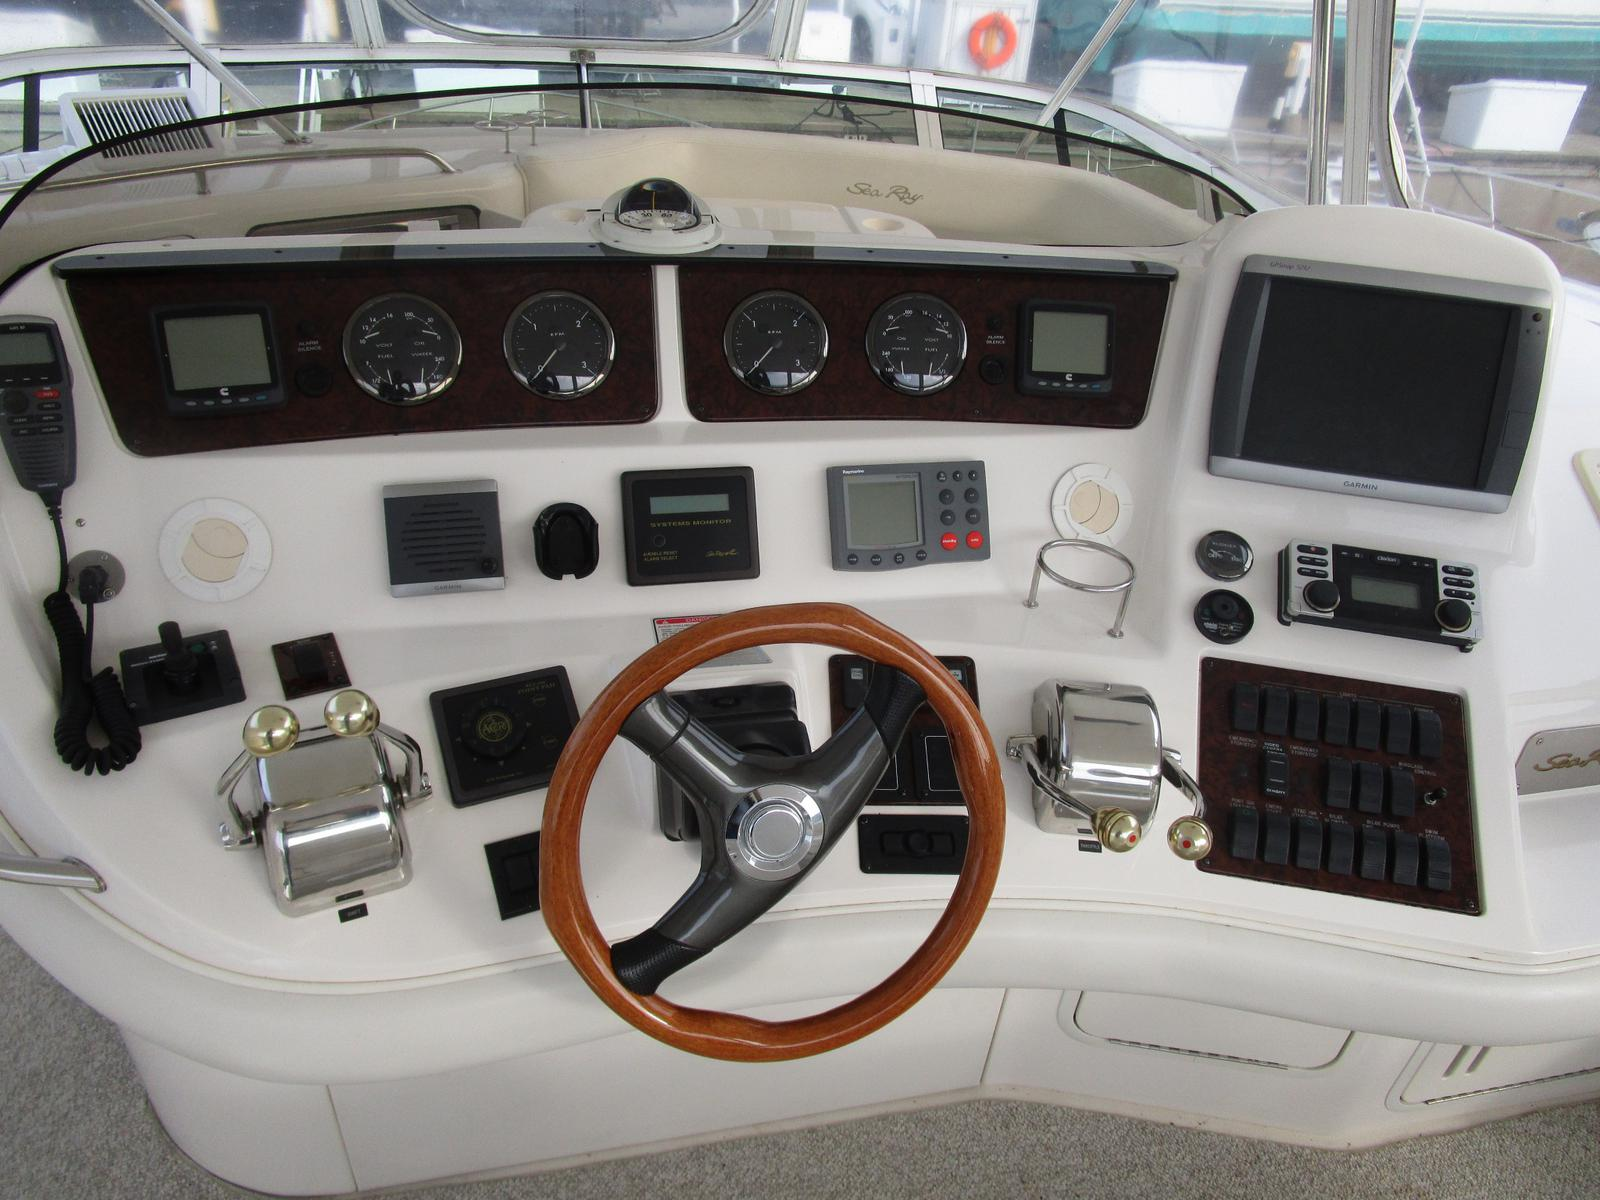 2003 Sea Ray boat for sale, model of the boat is 480 Sedan Bridge & Image # 4 of 15